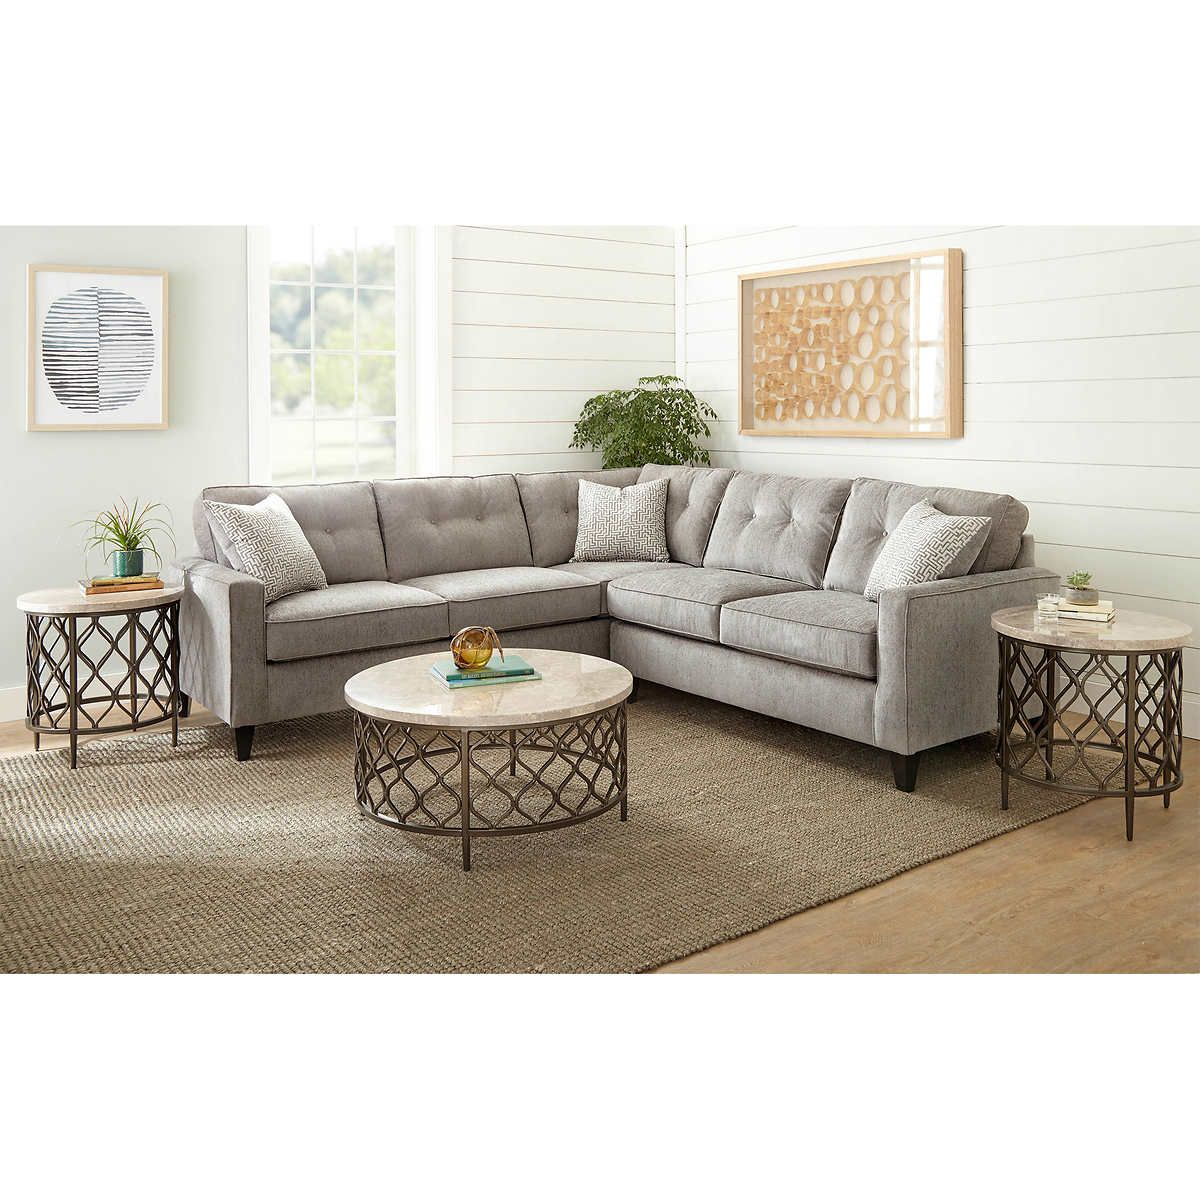 Madigan 2 piece Fabric Sectional dream home